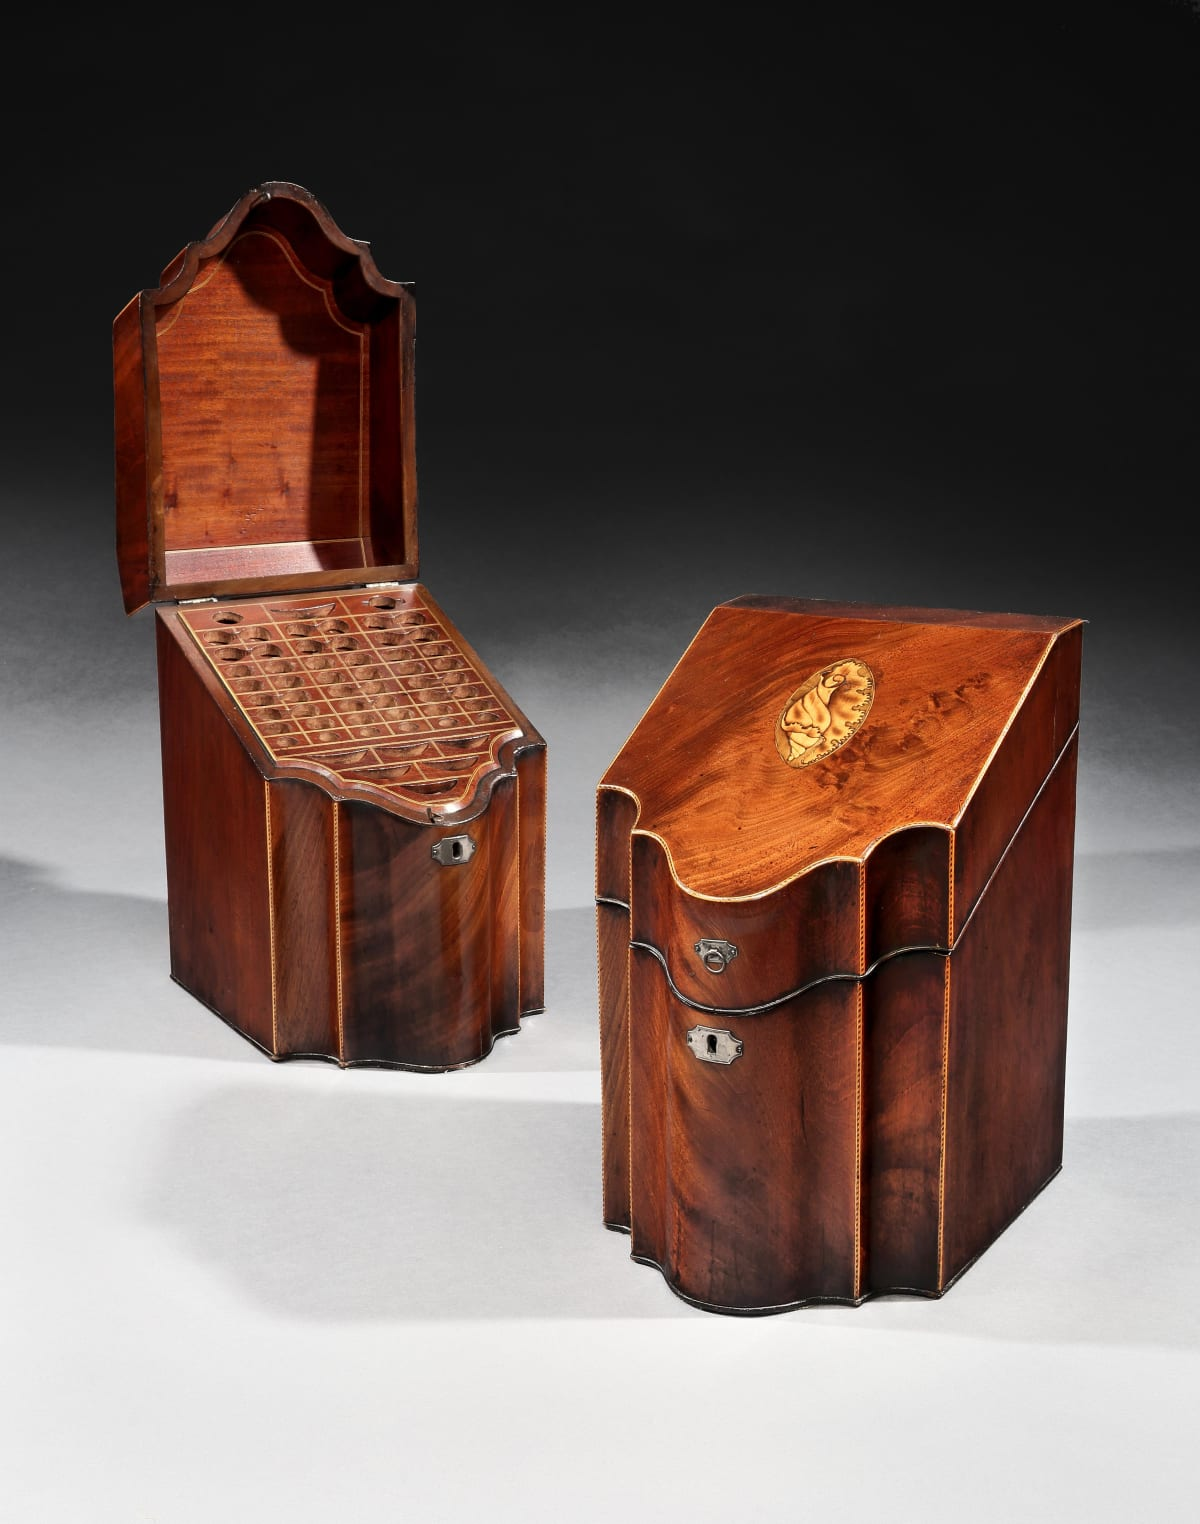 A PAIR OF GEORGE III CUTLERY BOXES, ENGLISH, CIRCA 1790